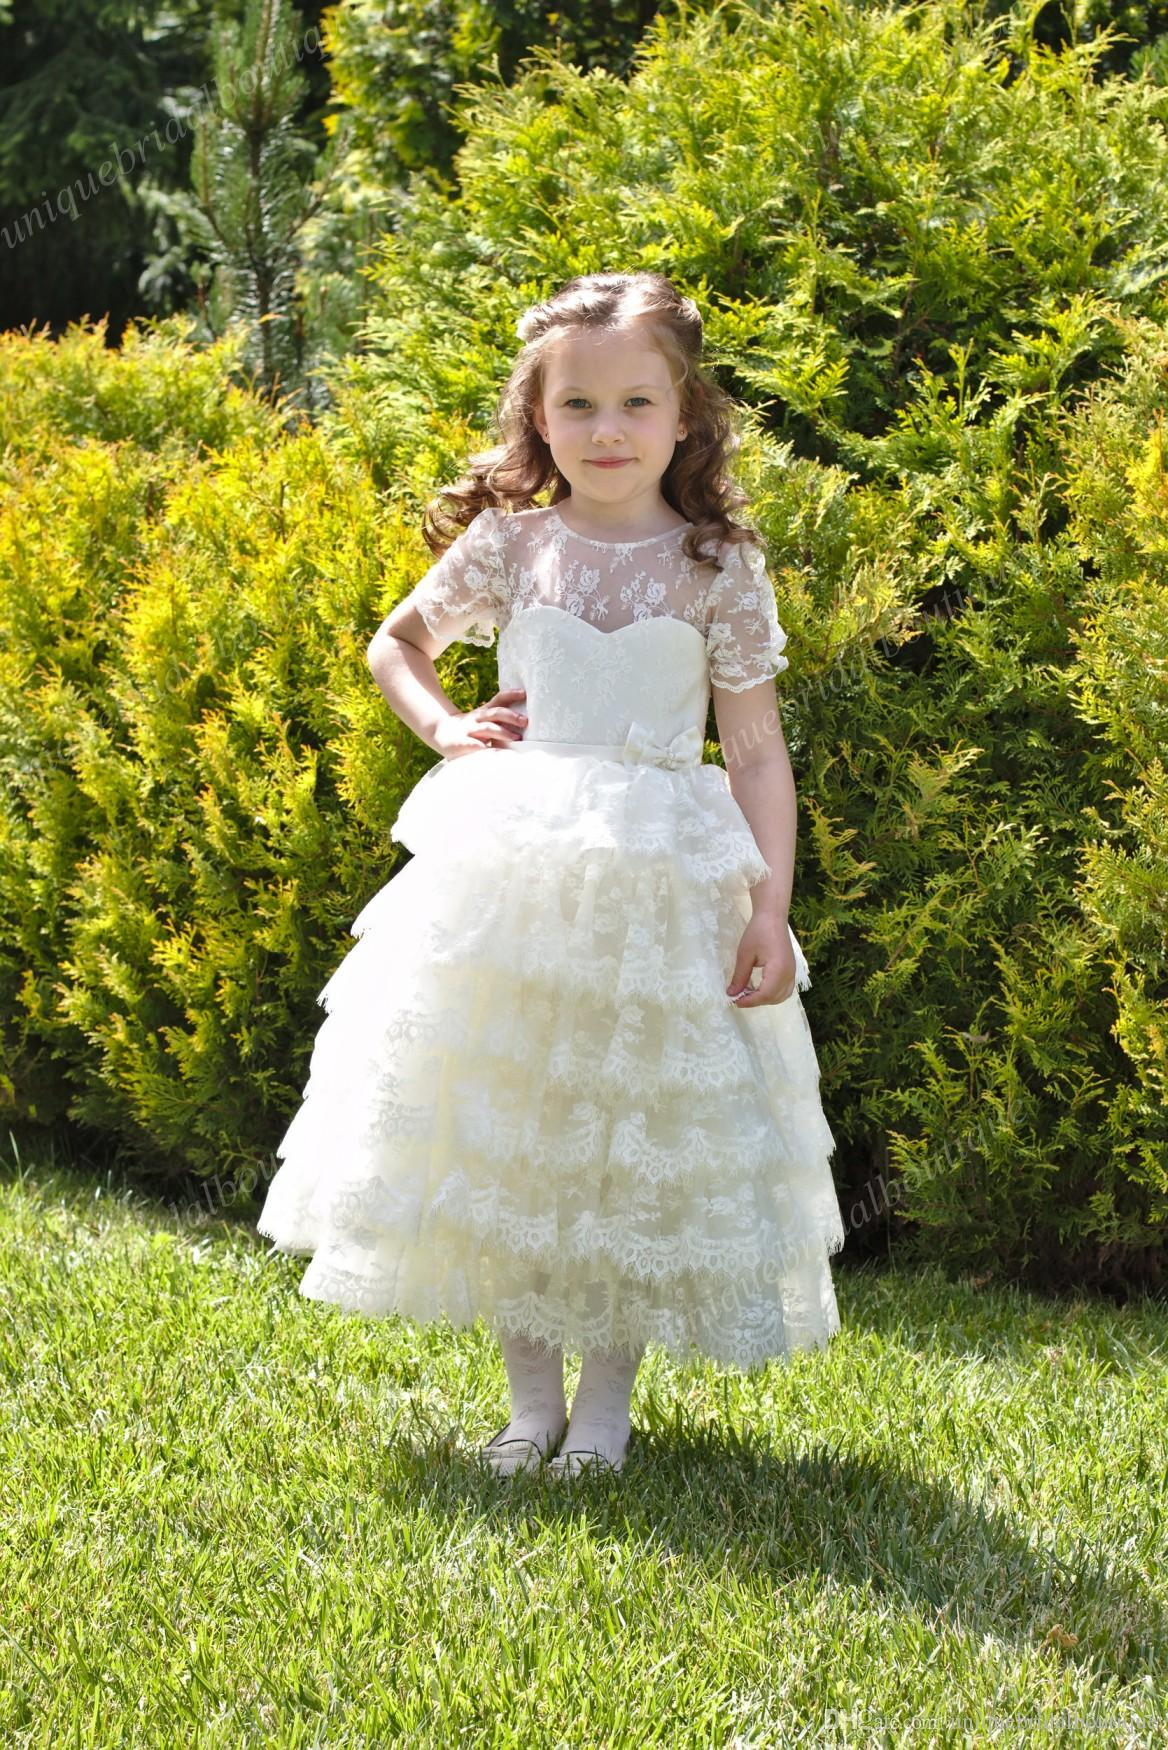 Cupcake Flower Girls Dresses with Short Sleeves and Ruffles Skirt Ball Gown Tea Length Fully Lace First Communion Dress for Little Girl